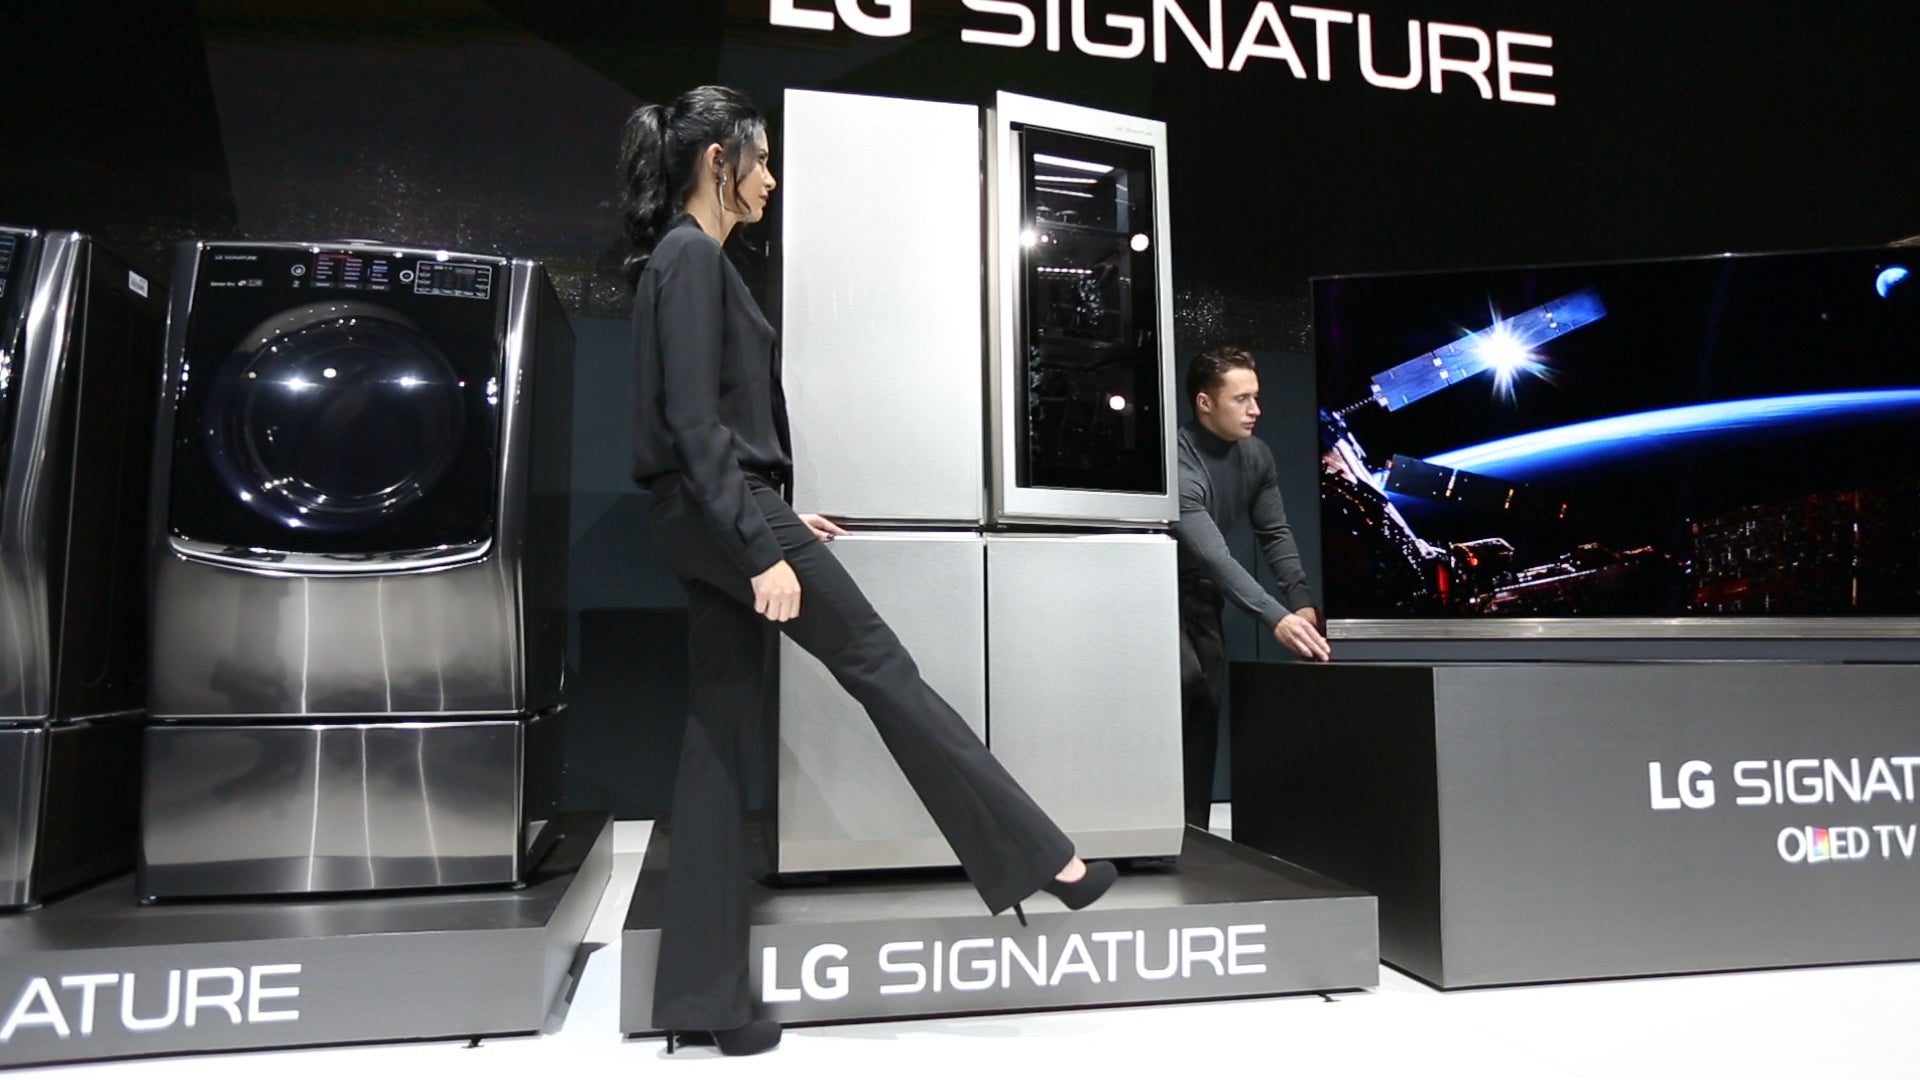 LG Just Made The World's Laziest Refrigerator